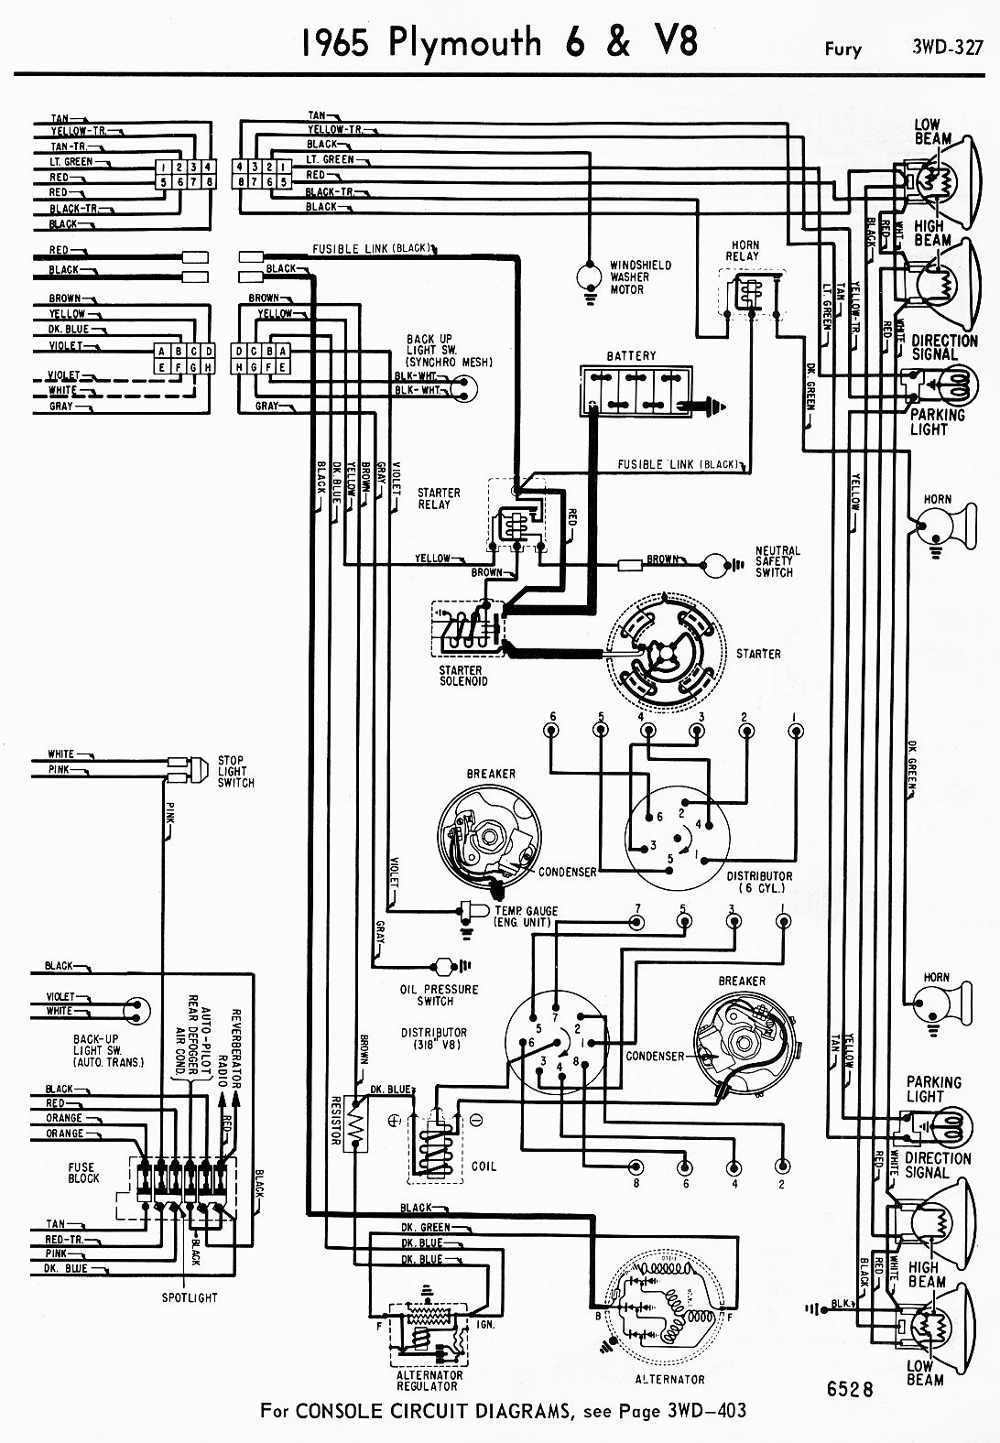 489414684476493488 together with Vw Alternator Wiring Diagram likewise P 0900c1528008ab9d additionally 7qwya Ta a Hi I 1997 Ta a 2 4l Drove Around Town further 318 Plymouth Engine Diagram. on 96 plymouth wiring diagram